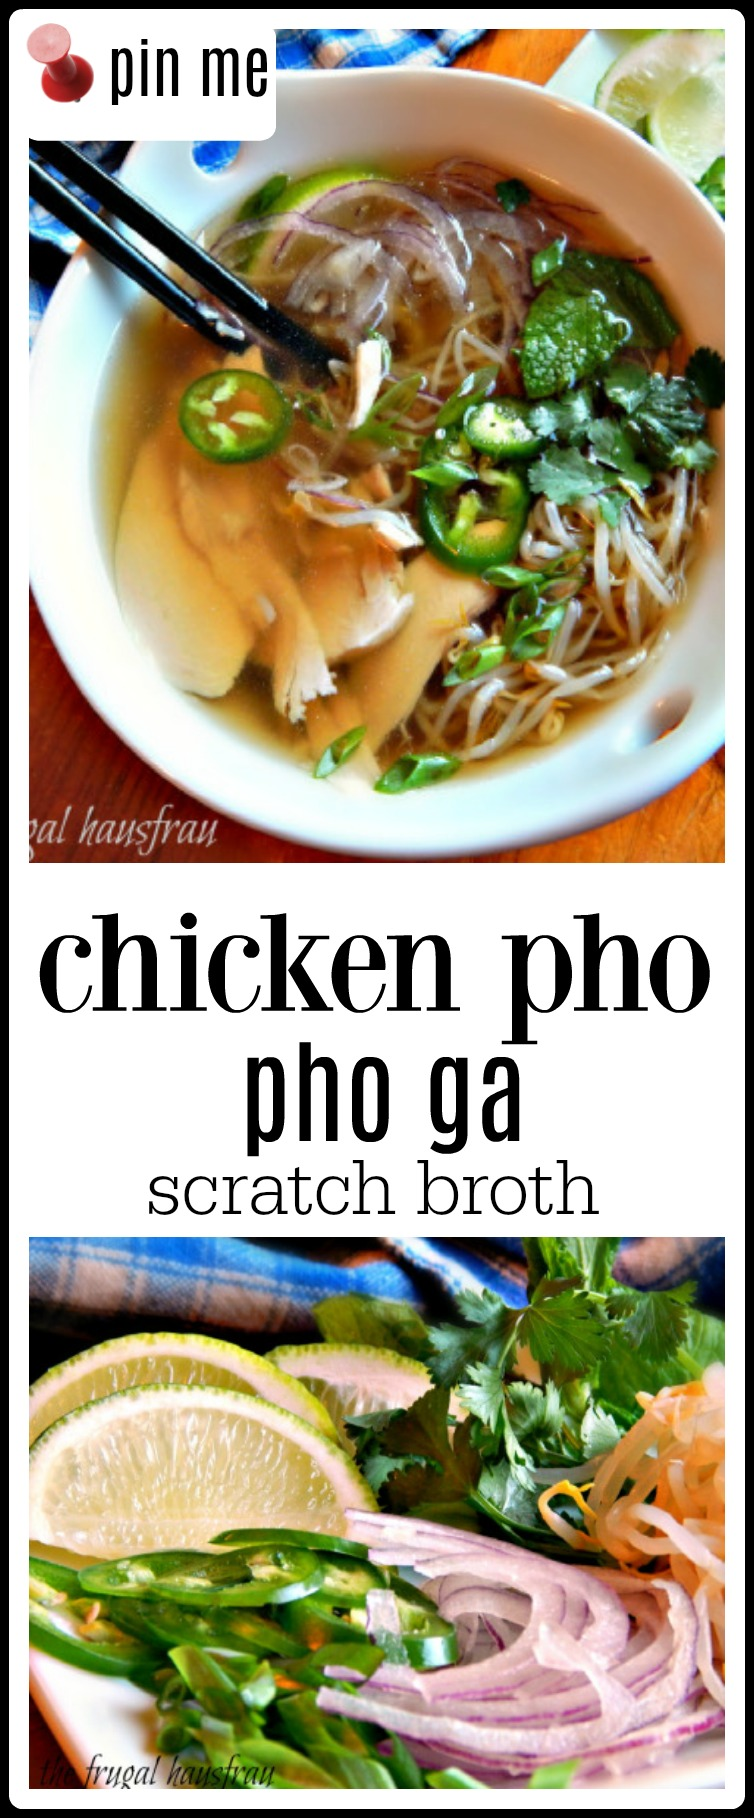 Pho Ga Vietnamese Chicken Noodle Soup is an absolute classic. There are several preparations and lots of small steps, but it's do-able with the right recipe! #PhoGa #ChickenPho #VietnameseSoup #VietnamesePho